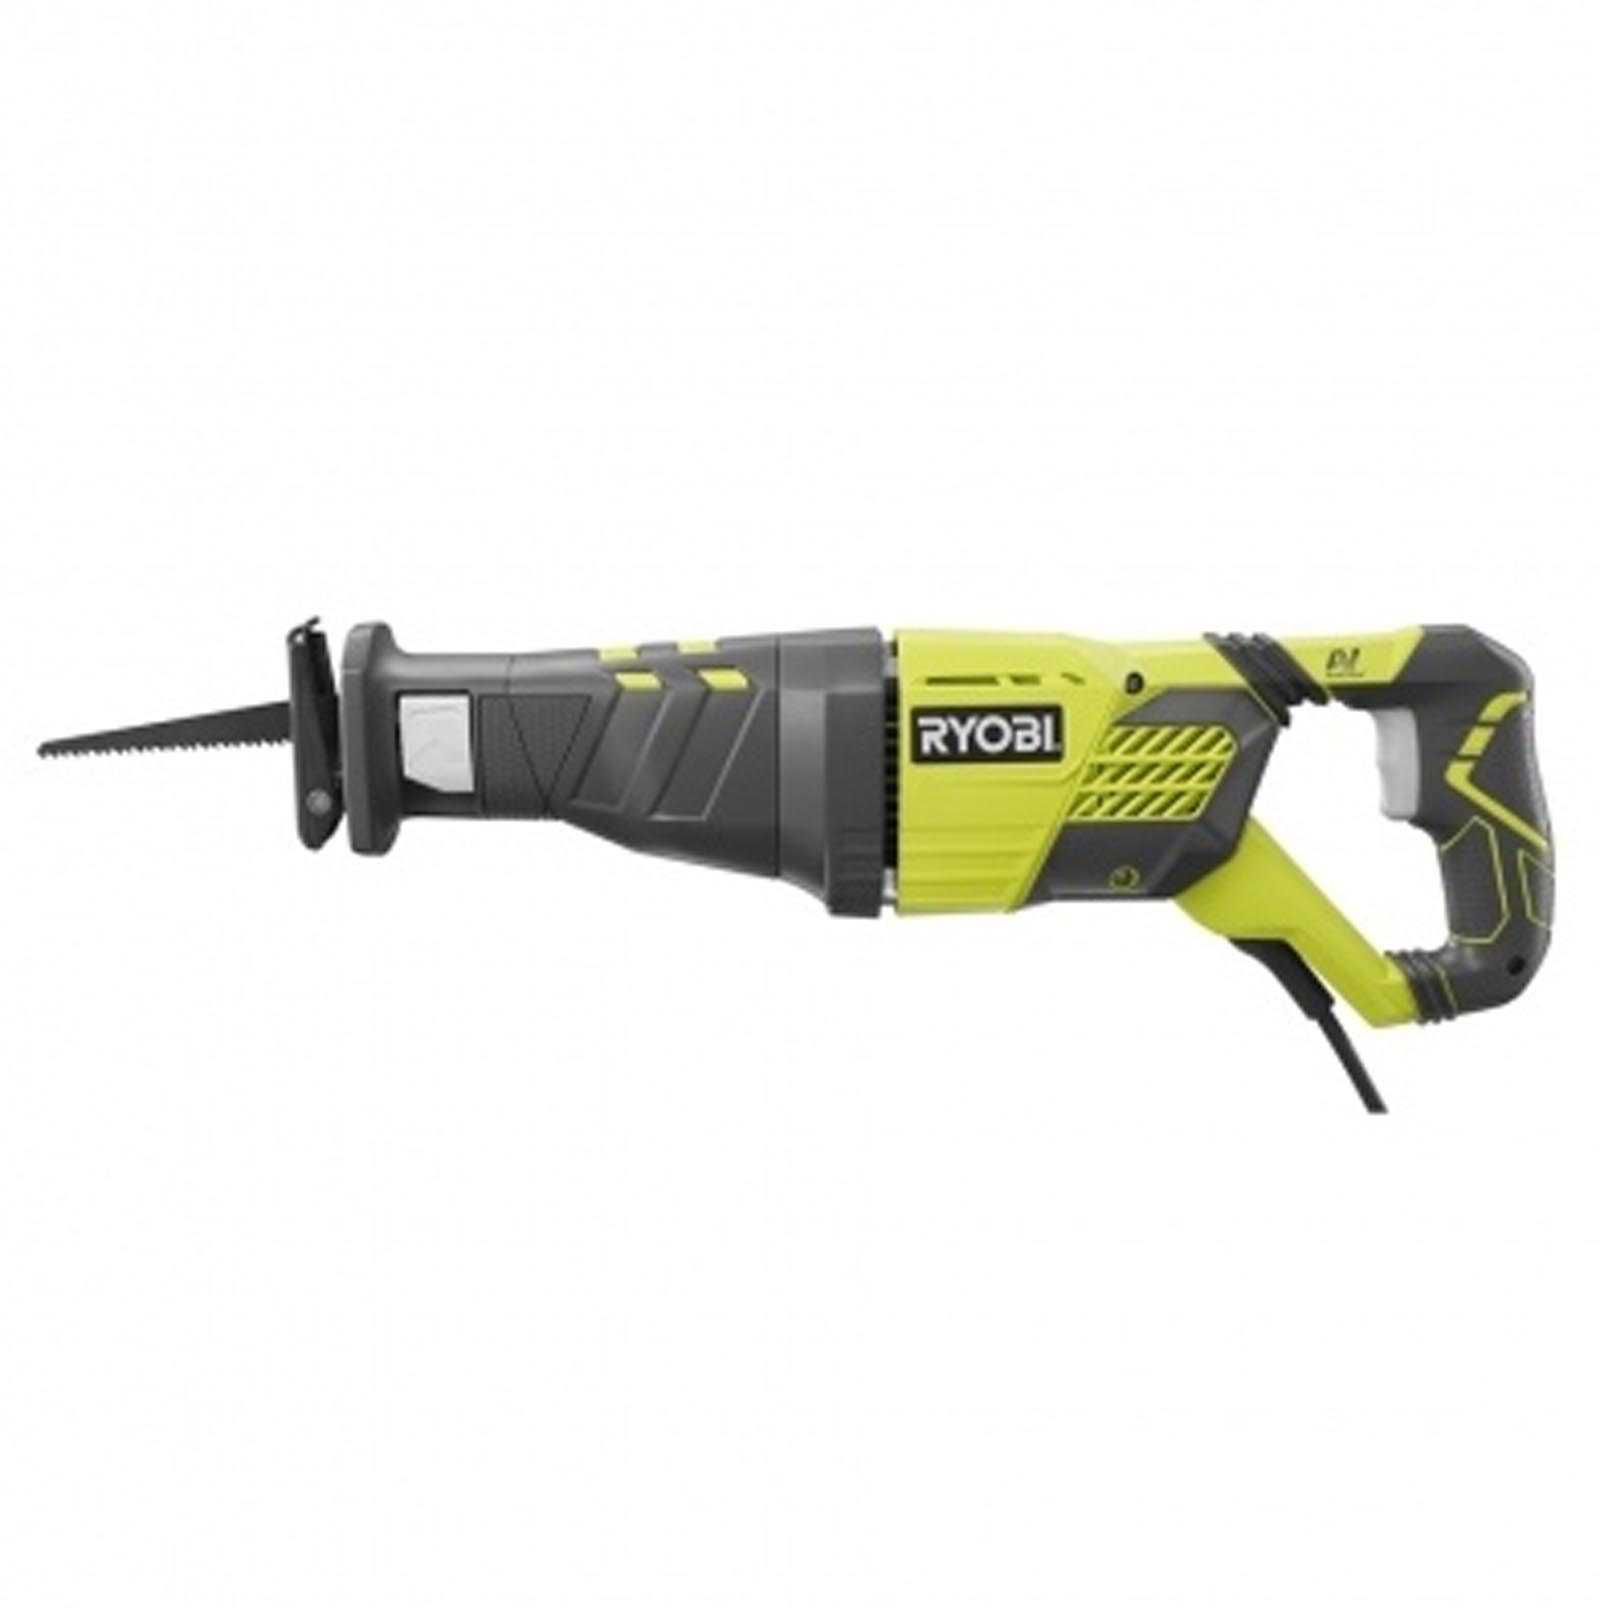 Ryobi 120V 10Amp Variable Speed Electric Reciprocating Saw w/Blade (Cert Refurb)